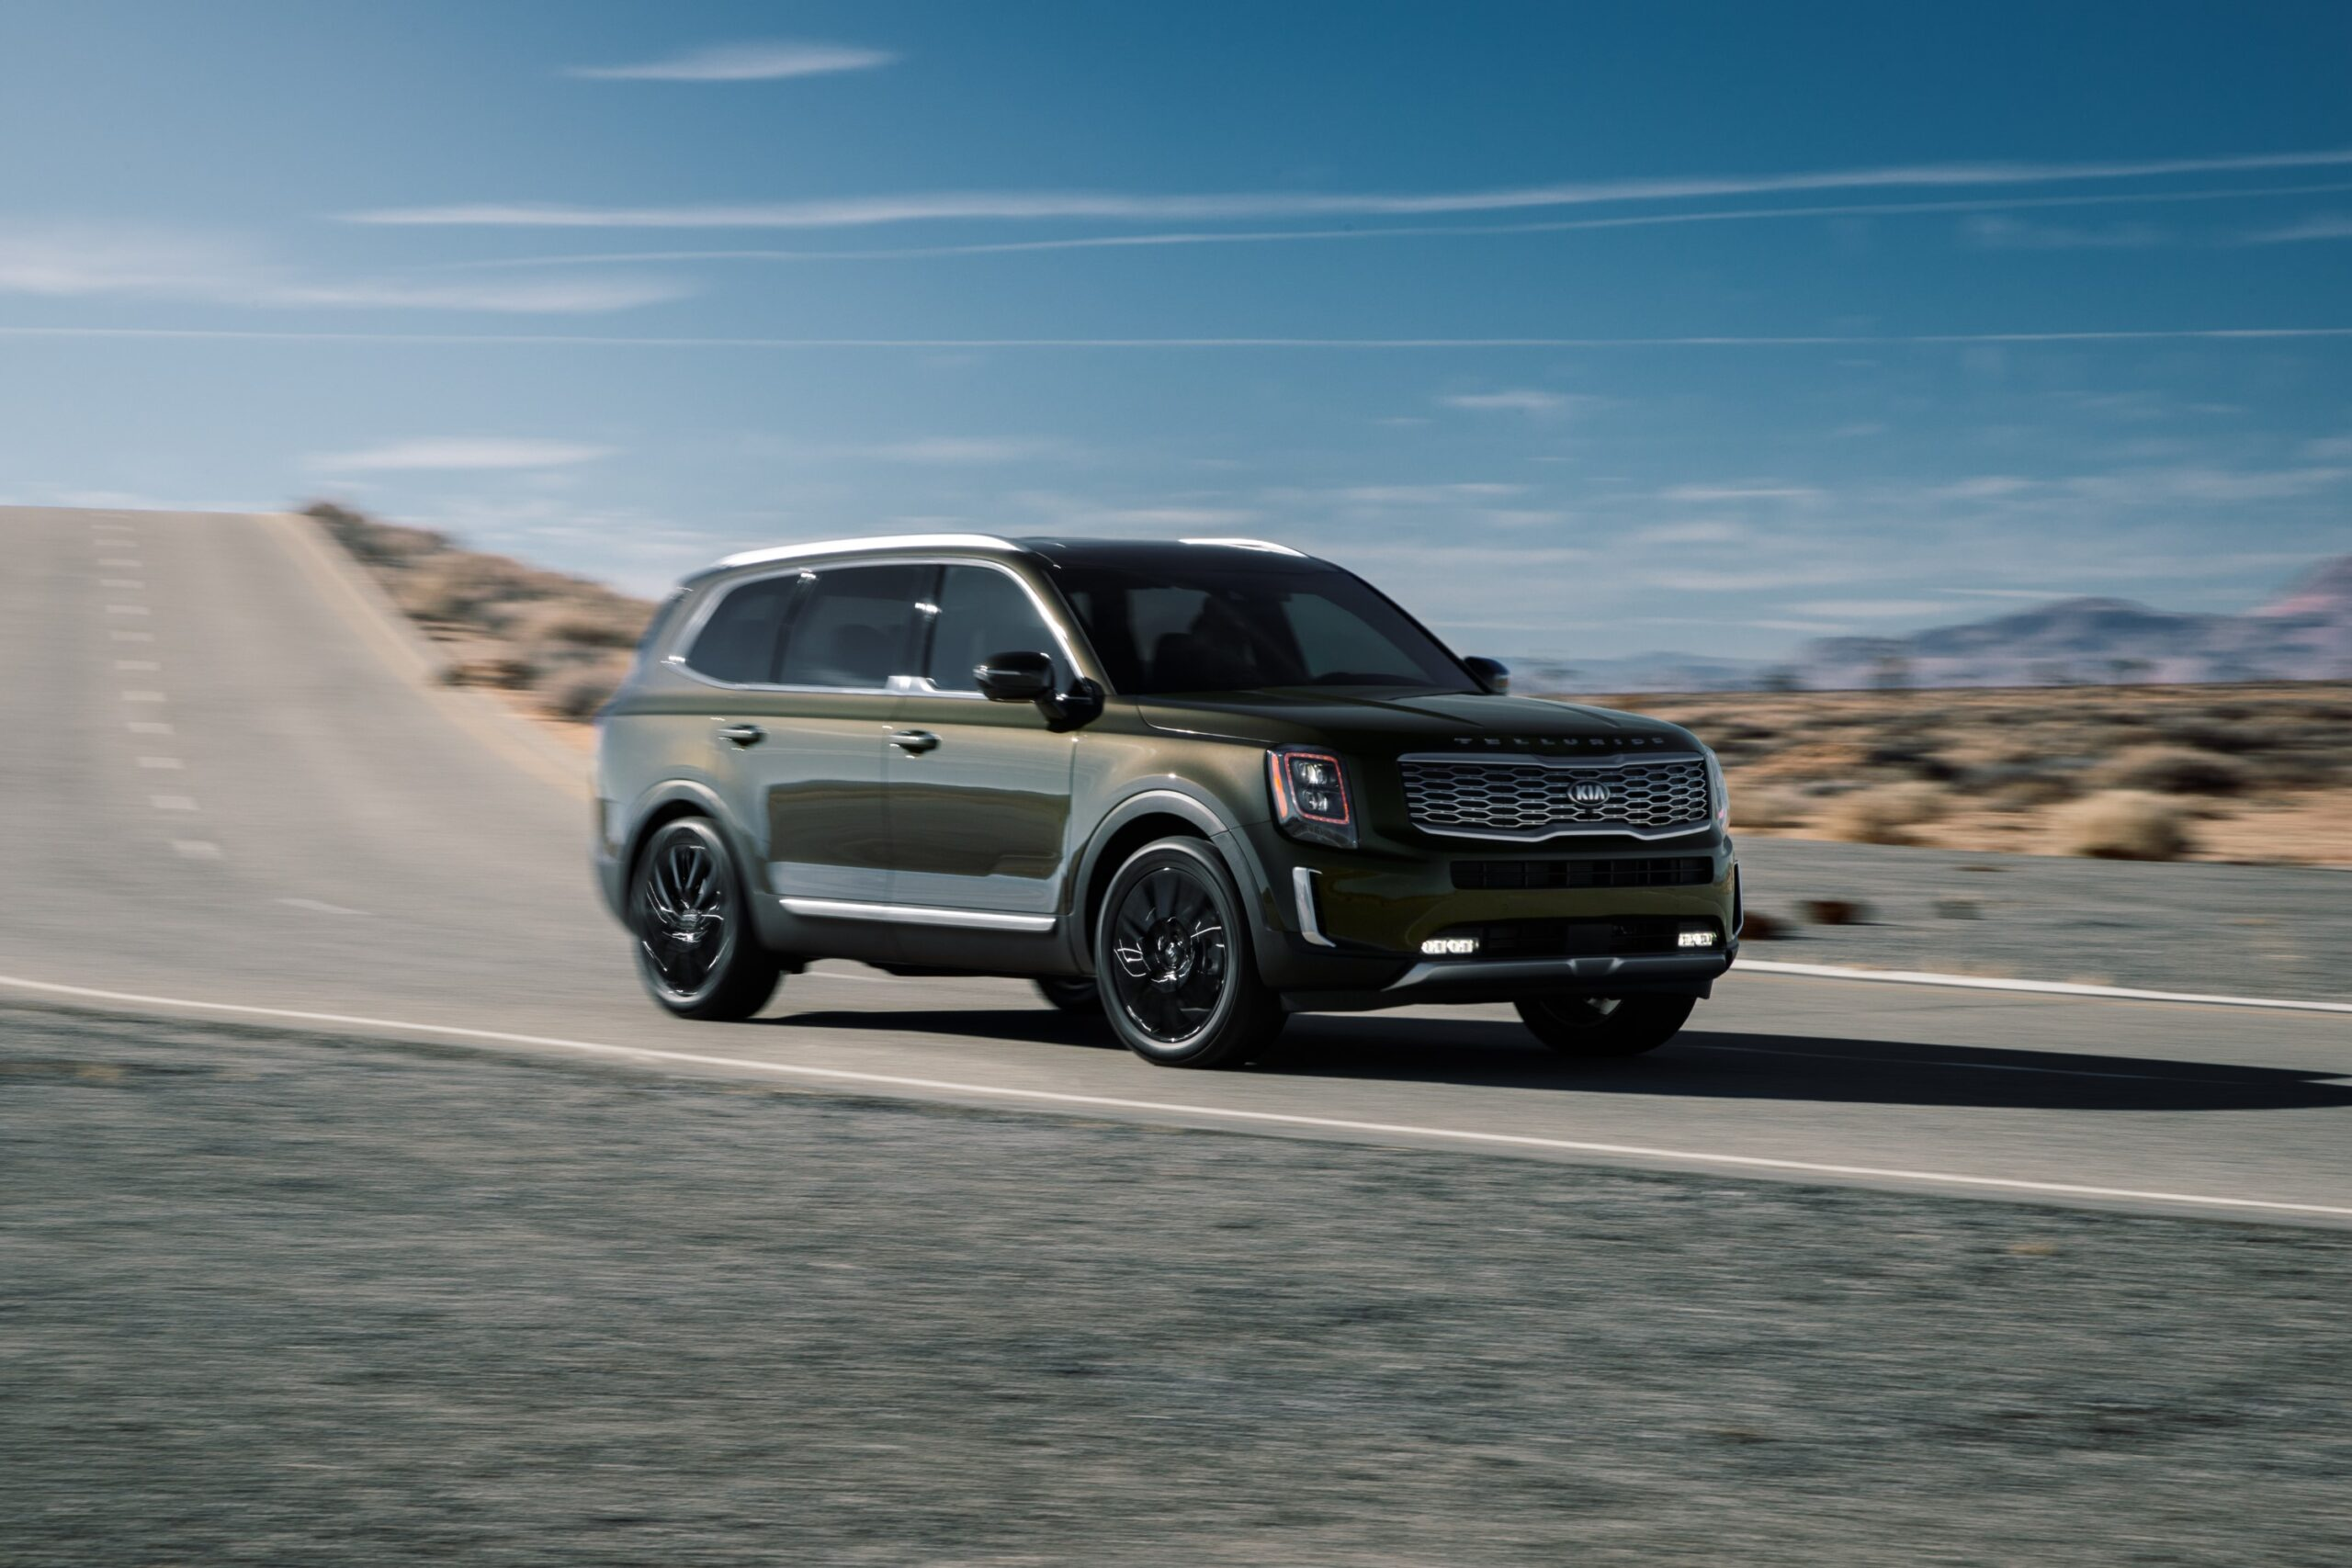 World Car of the Year 2020: KIA Telluride